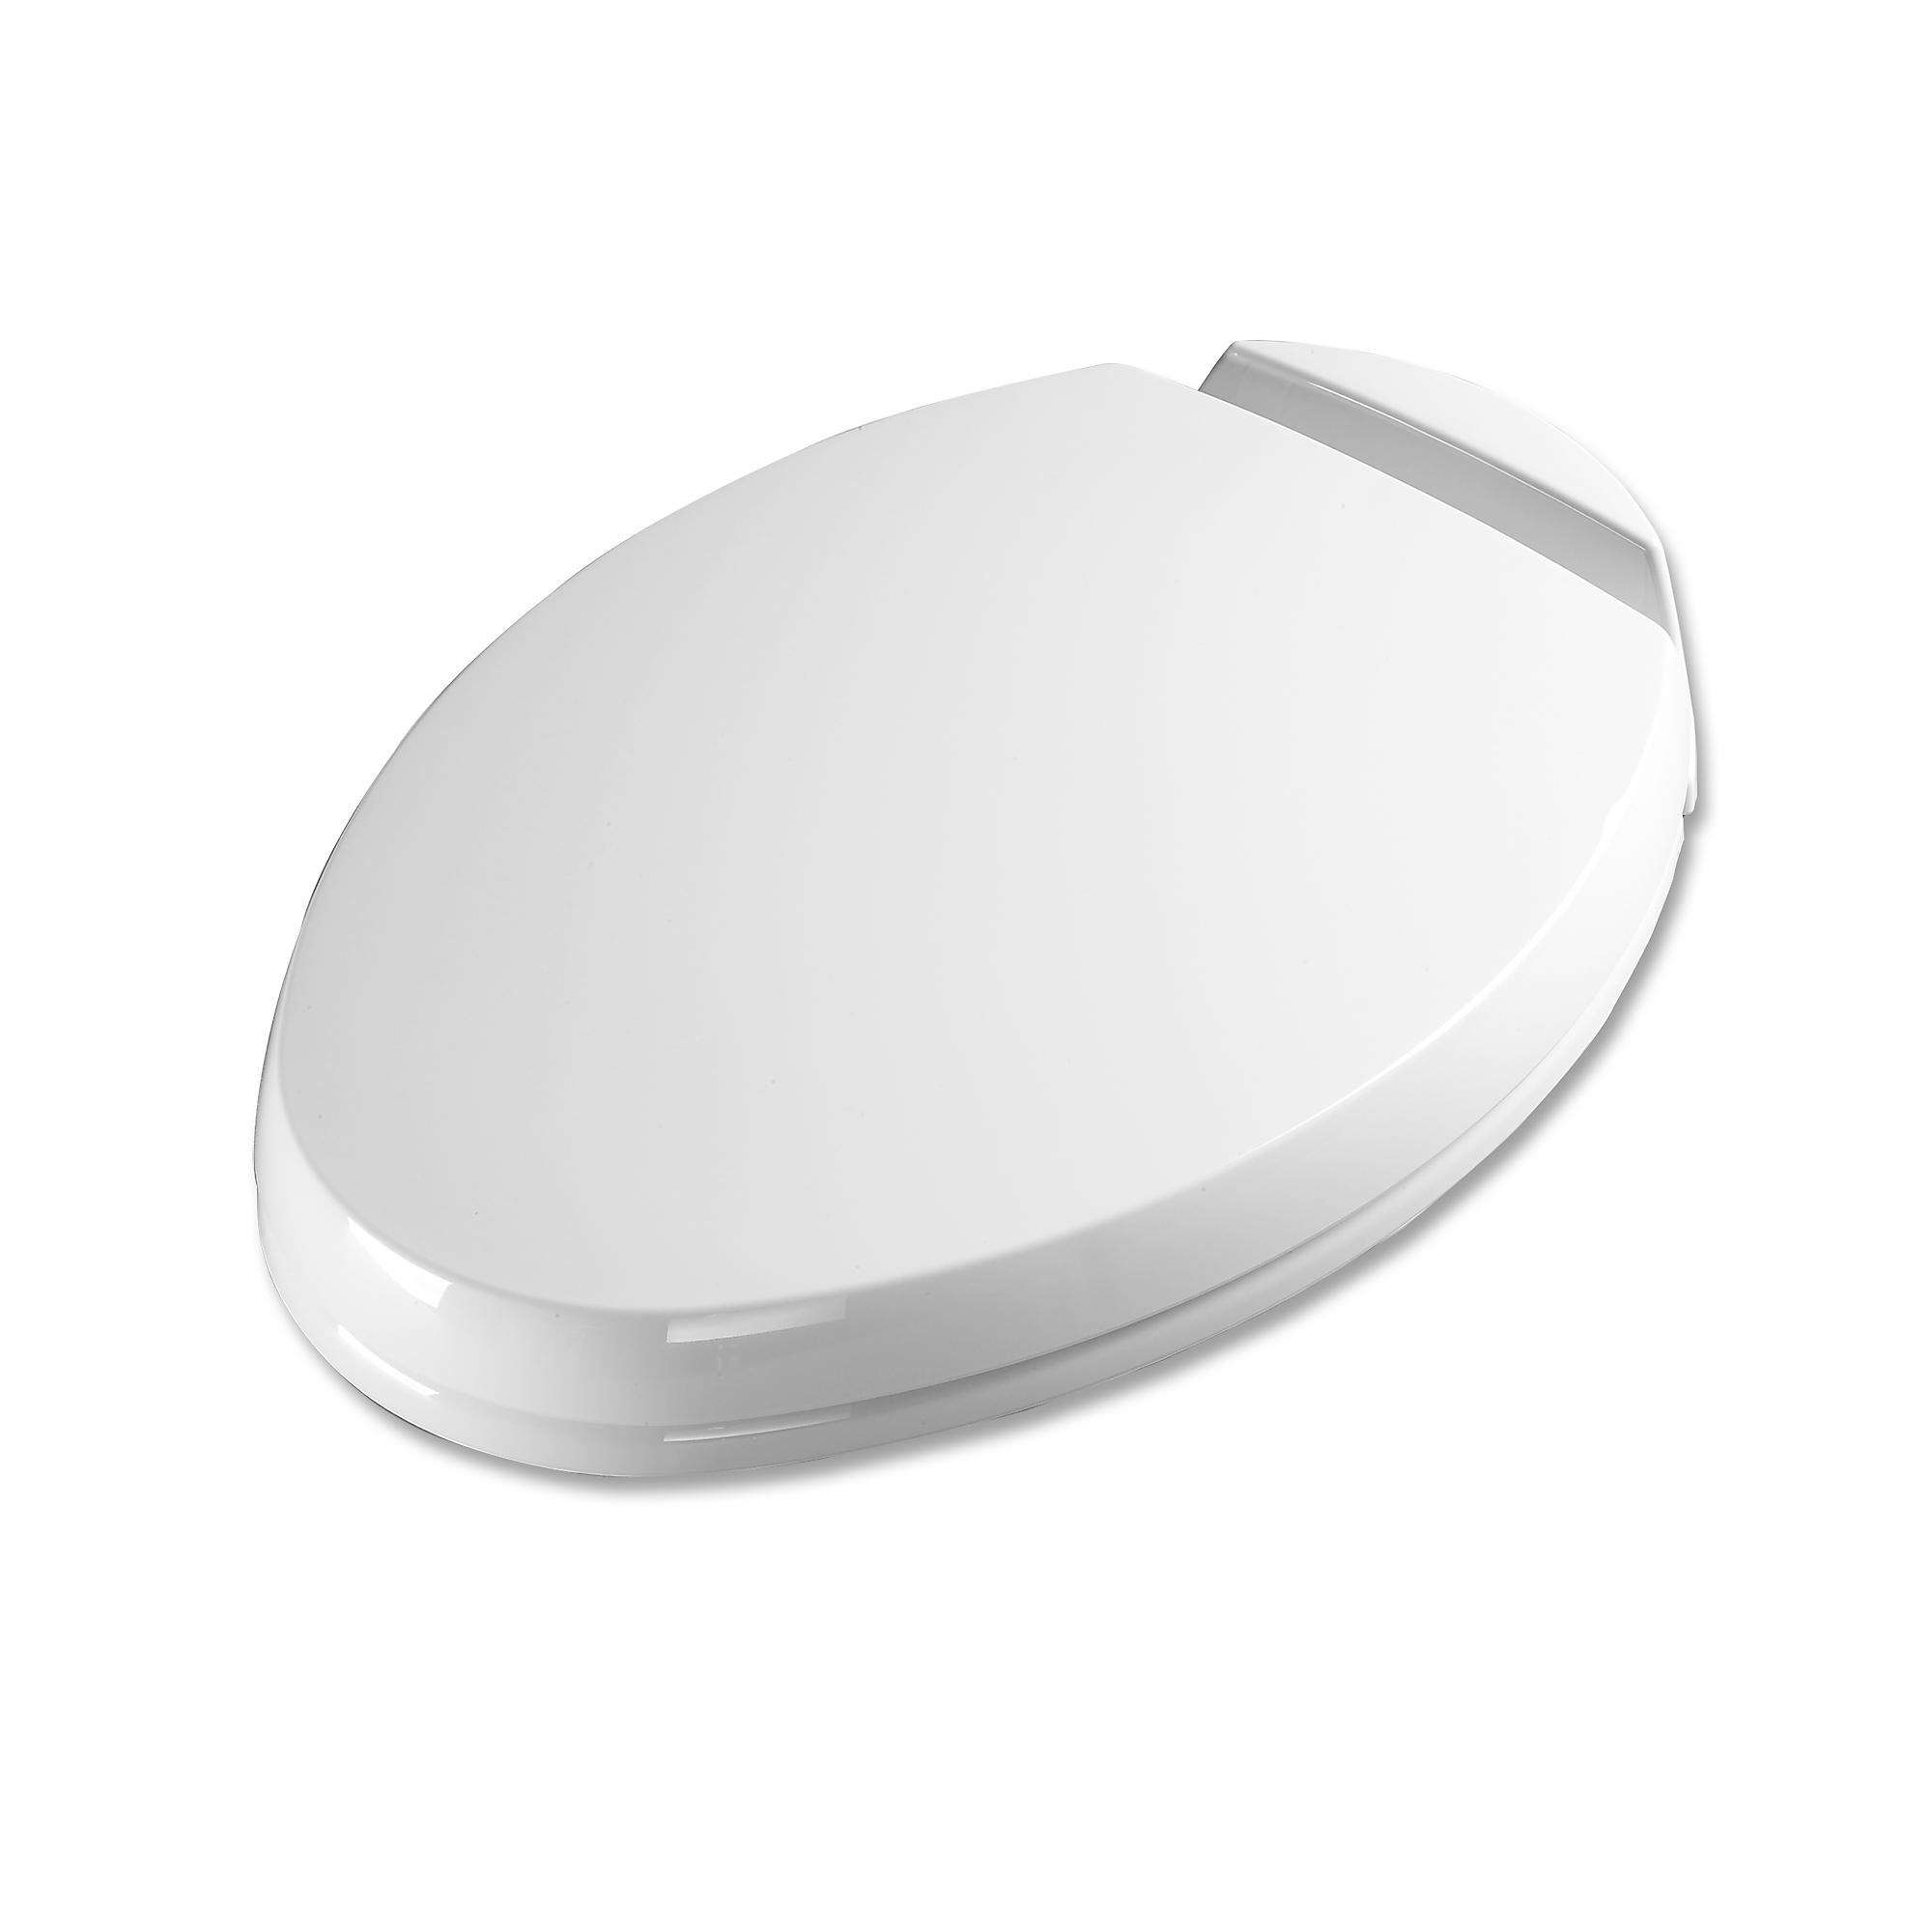 Ss204 01 oval softclose  toilet seat   elongated 0